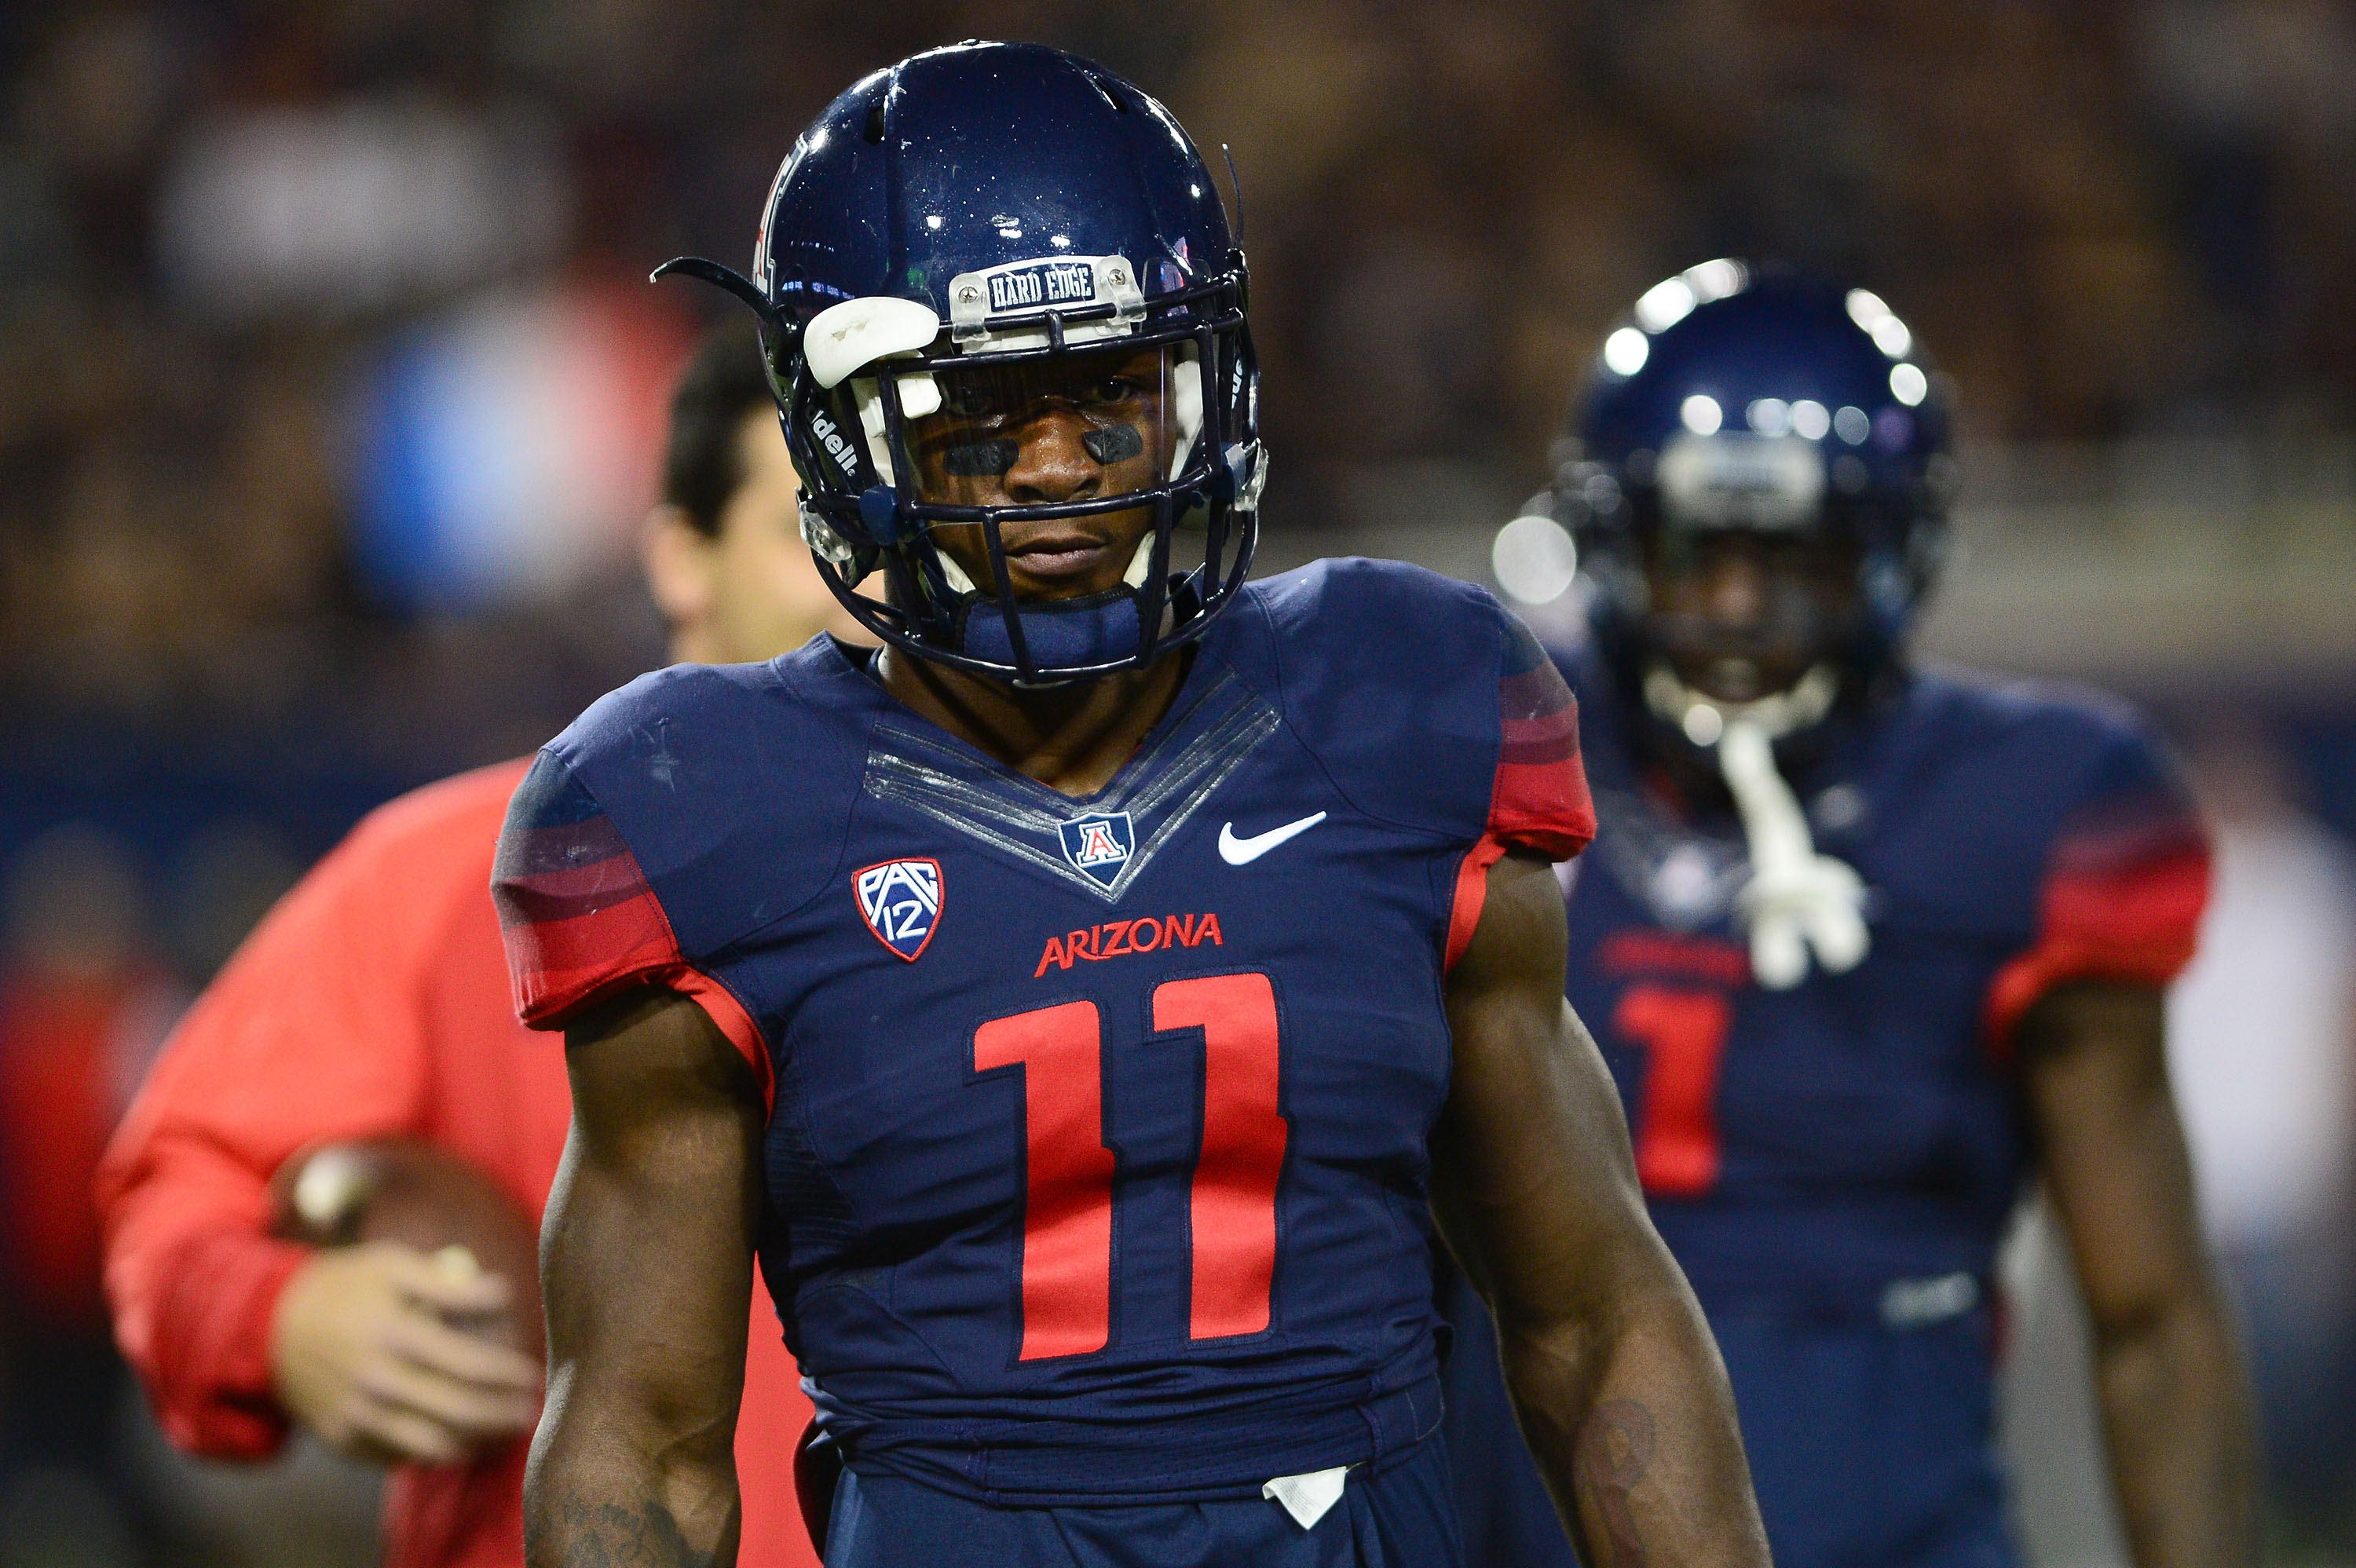 Safety Will Parks #11 of the Arizona Wildcats looks on during warm ups prior to the game against Utah Utes at Arizona Stadium on November 14, 2015 in Tucson, Arizona. (Photo by Jennifer Stewart/Getty Images)